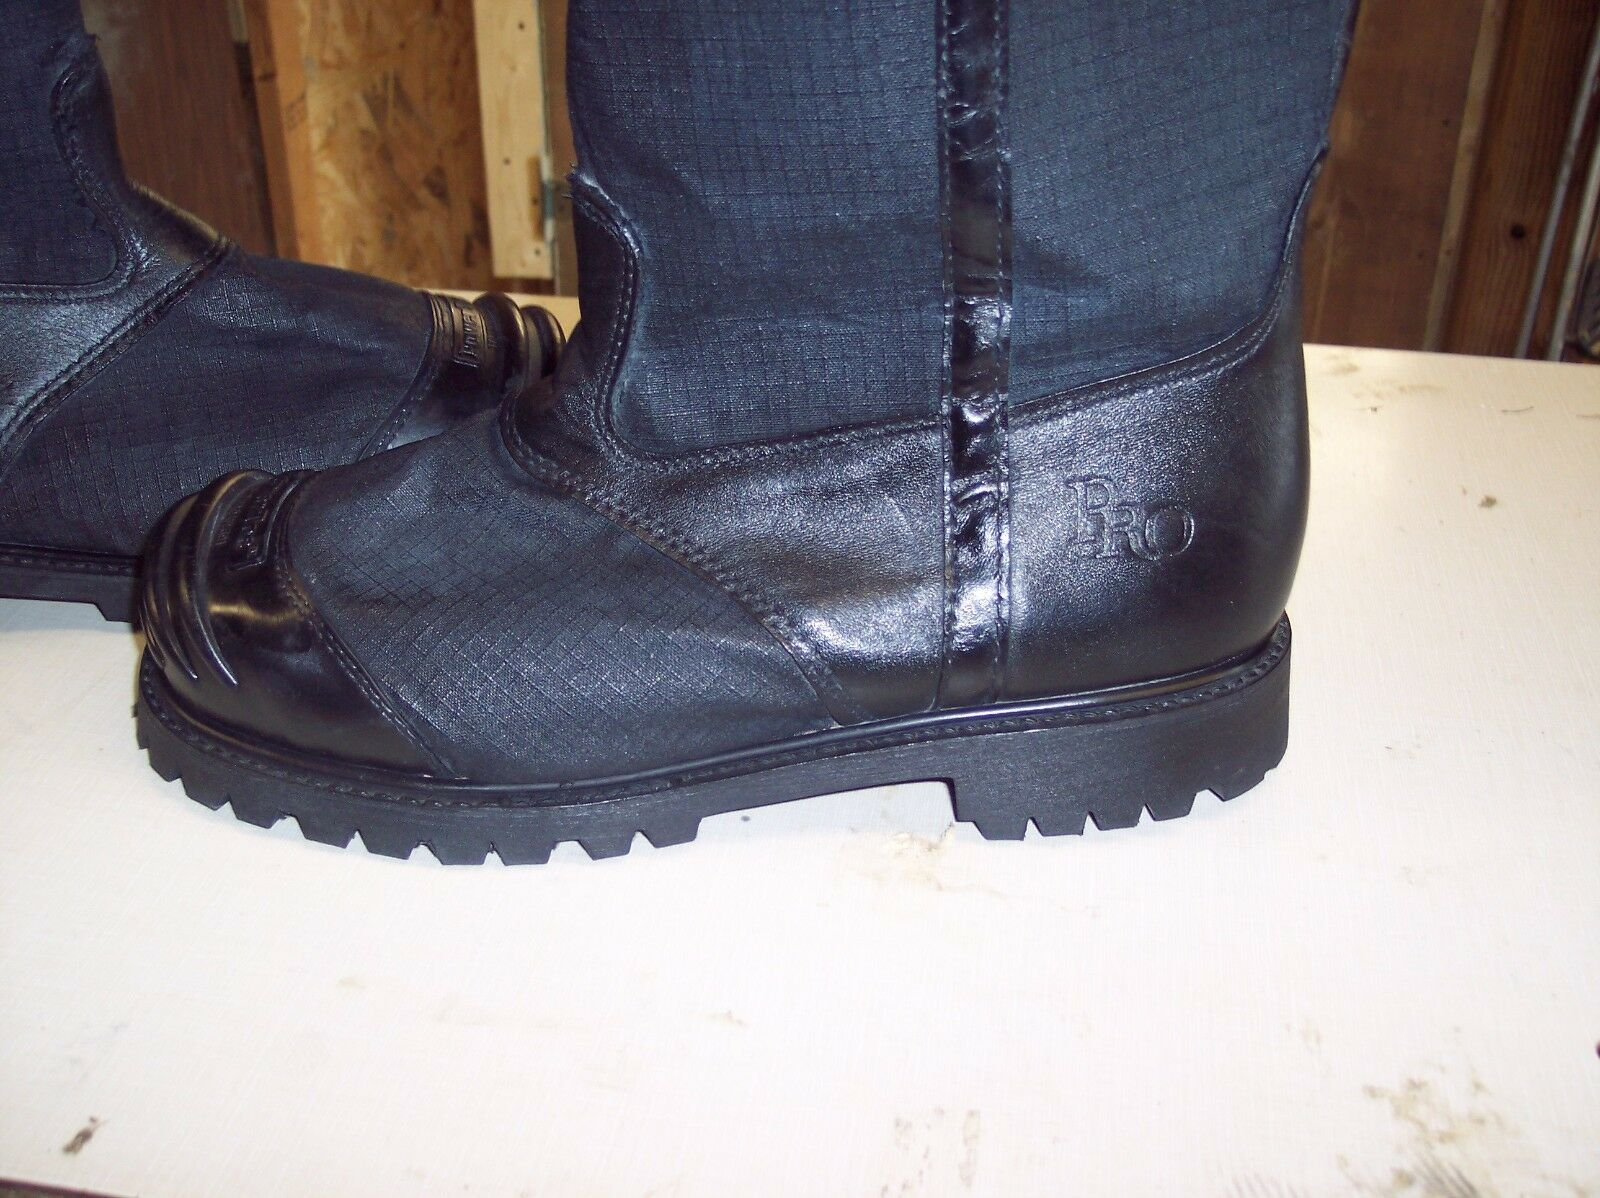 FIREFIGHTERS BOOTS  ACTUAL PICTURE  SIZE 11.5E ON SALE ONE WEEK 99.95